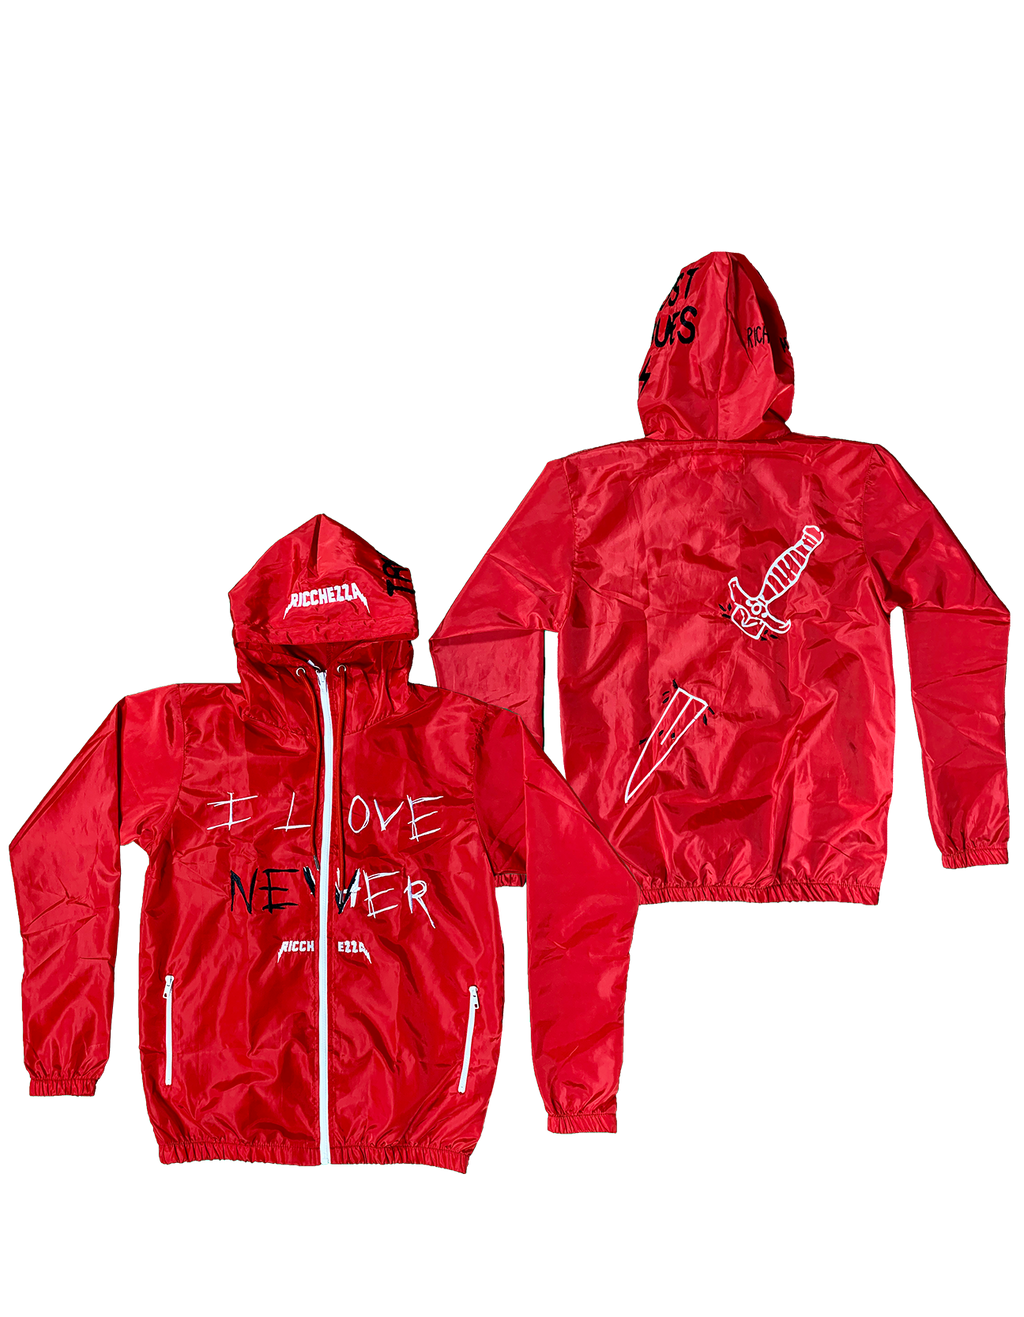 I Love Nevher red spring jacket